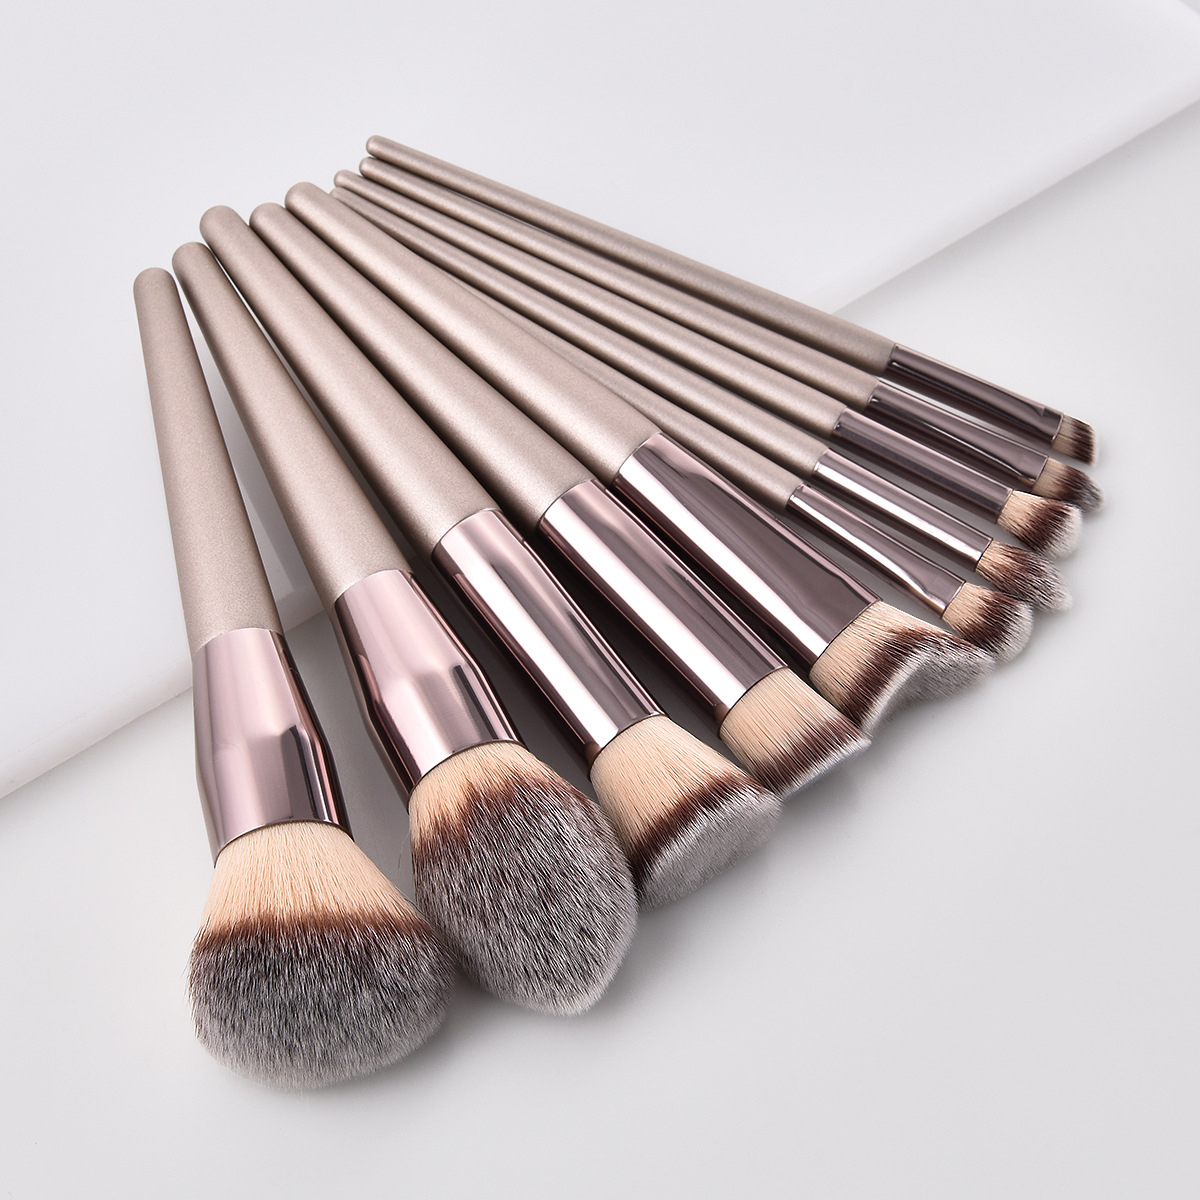 Luxury Champagne Makeup Brushes Set For Foundation Powder Blush Eyeshadow Concealer Lip Eye Cosmetics Beauty Tools Make Up Brush-in Eye Shadow Applicator from Beauty & Health